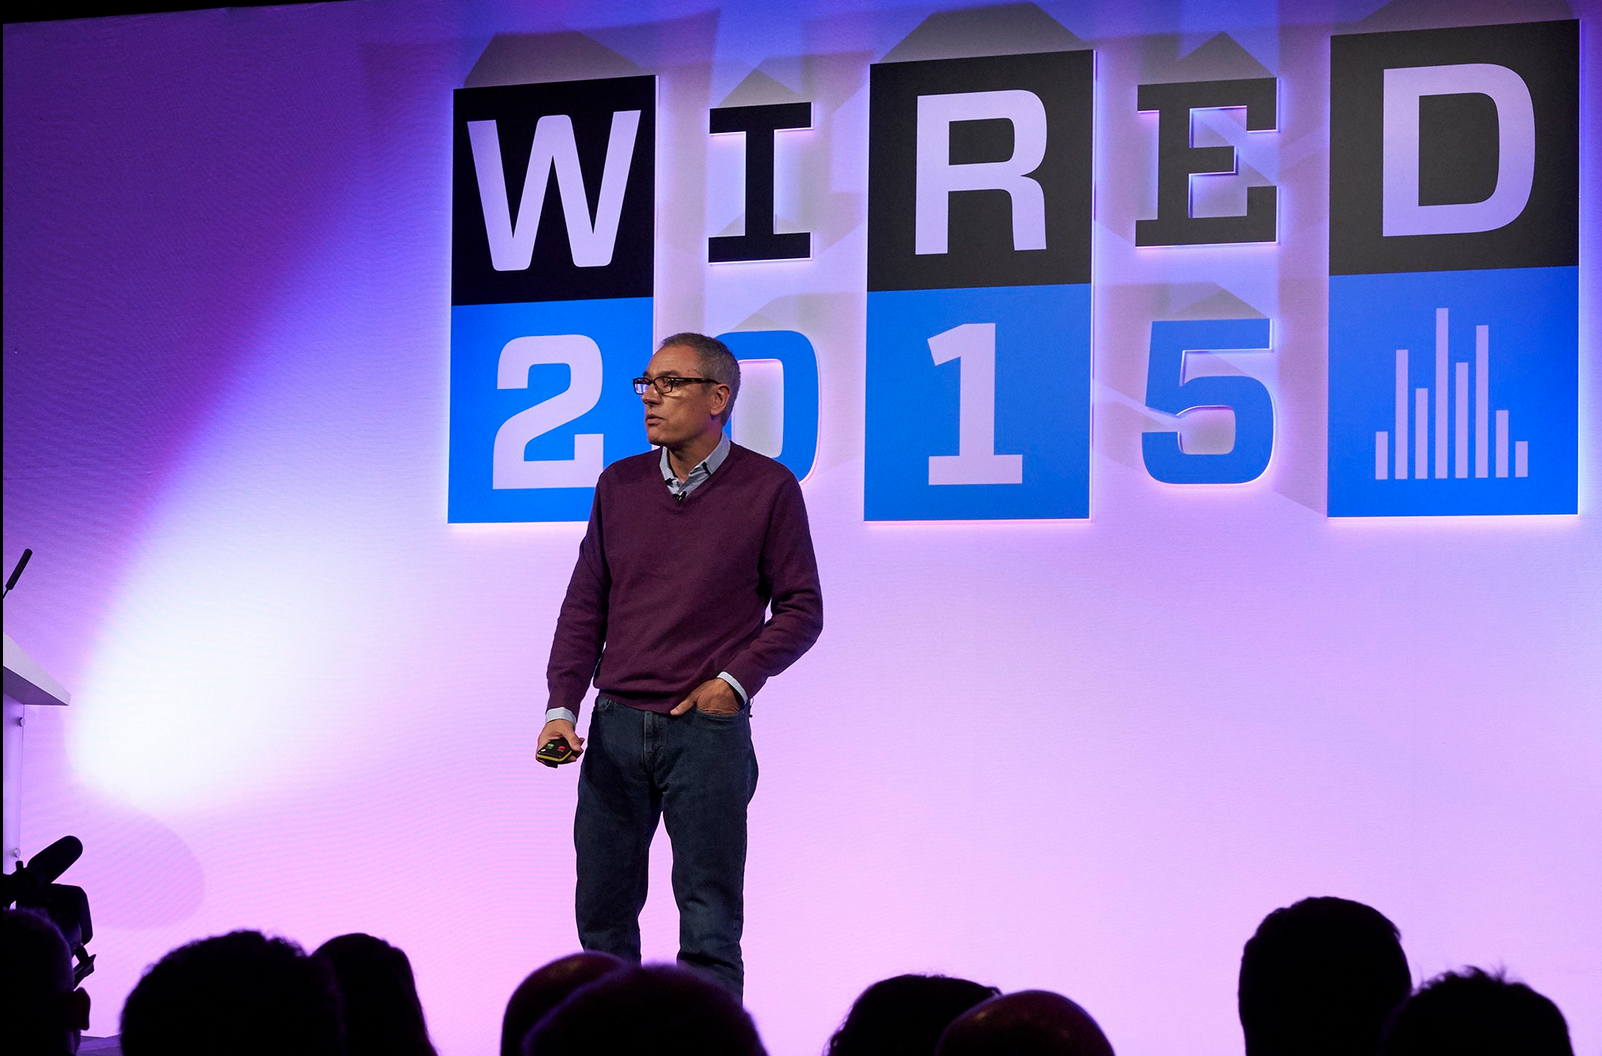 Jose Miguel Sokoloff Takes the Main Stage at WIRED2015